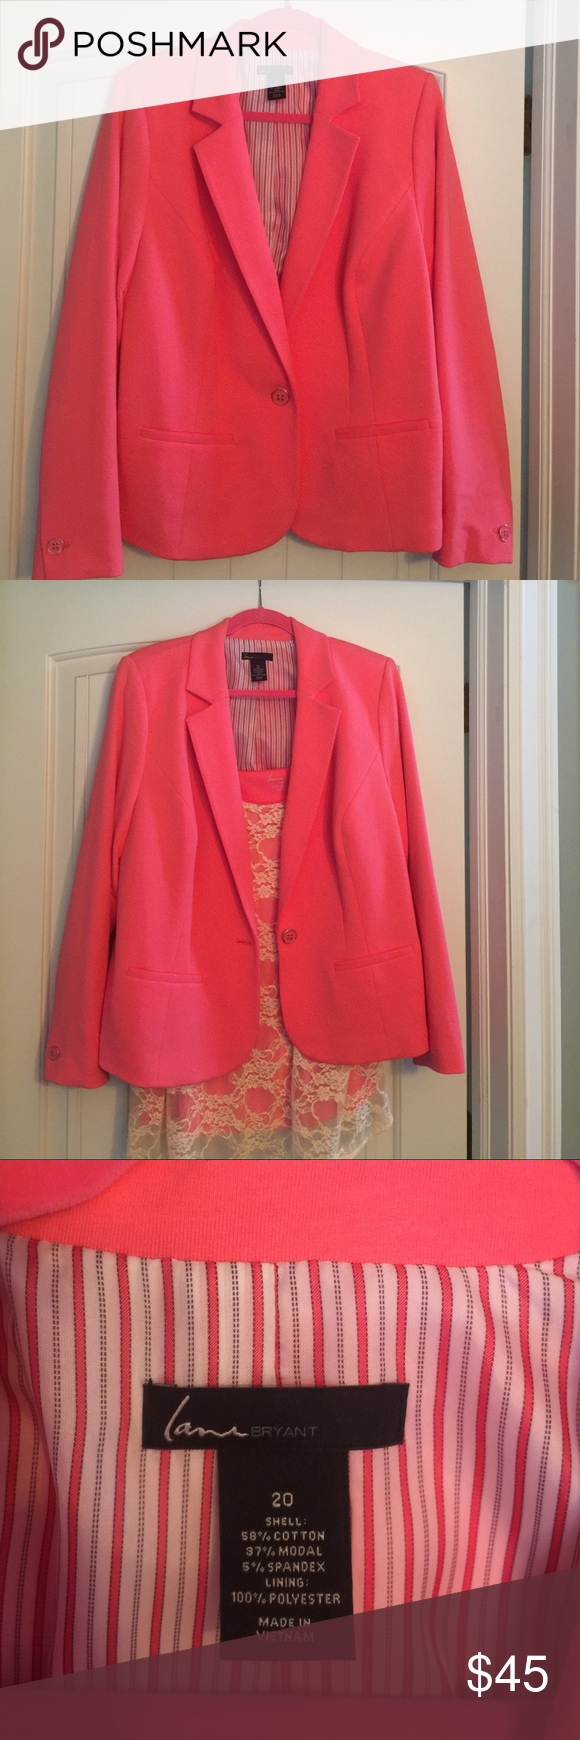 Lane Bryant suit jacket Lane Bryant suit jacket in a beautiful coral color! Really soft cotton and cute buttons on the single button closure and cuffs. Worn once and in excellent condition! Lane Bryant Jackets & Coats Blazers